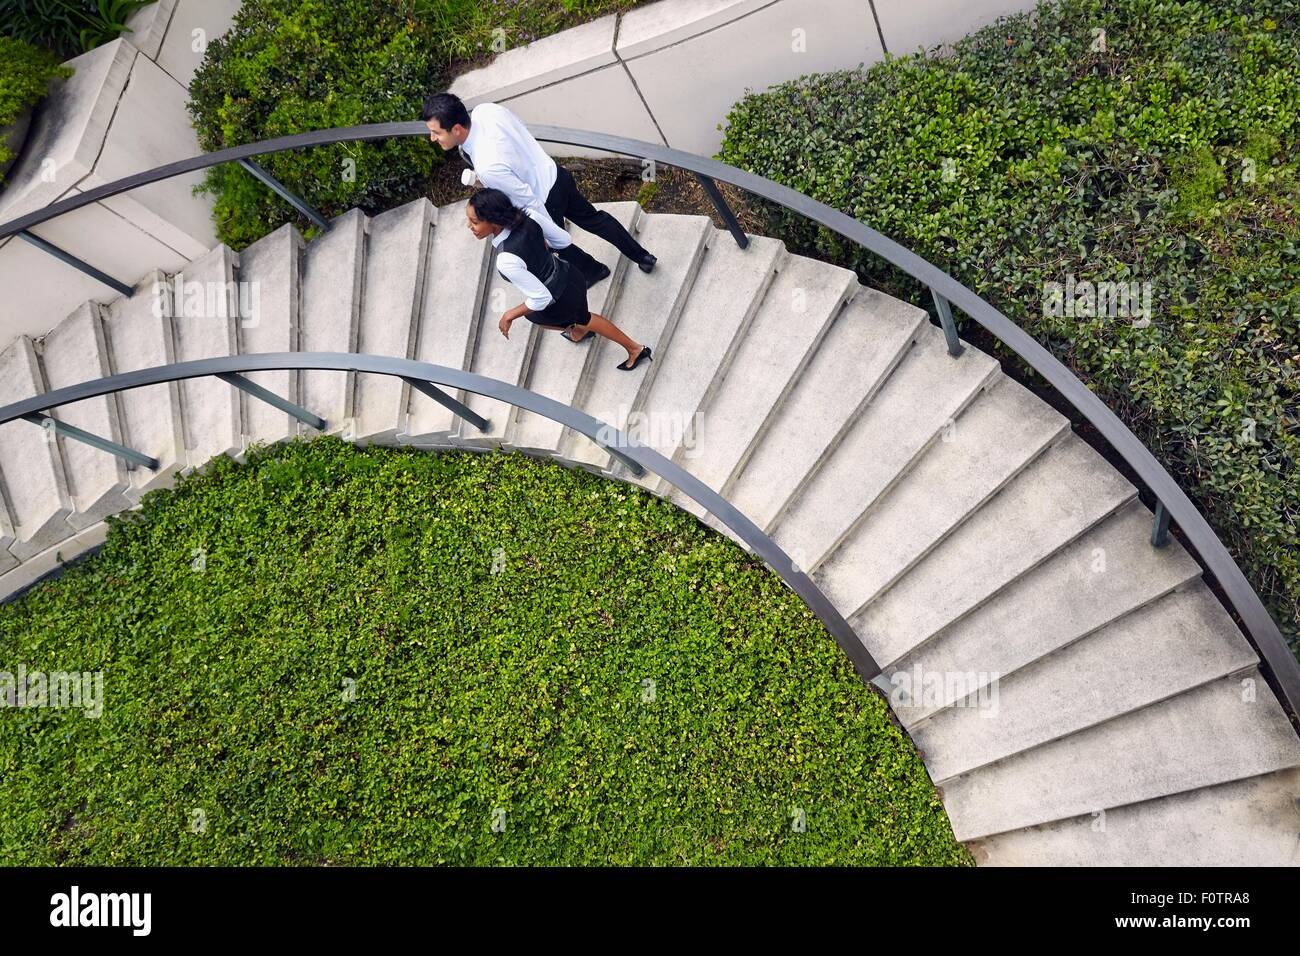 High angle view of business people ascending spiral stairway - Stock Image